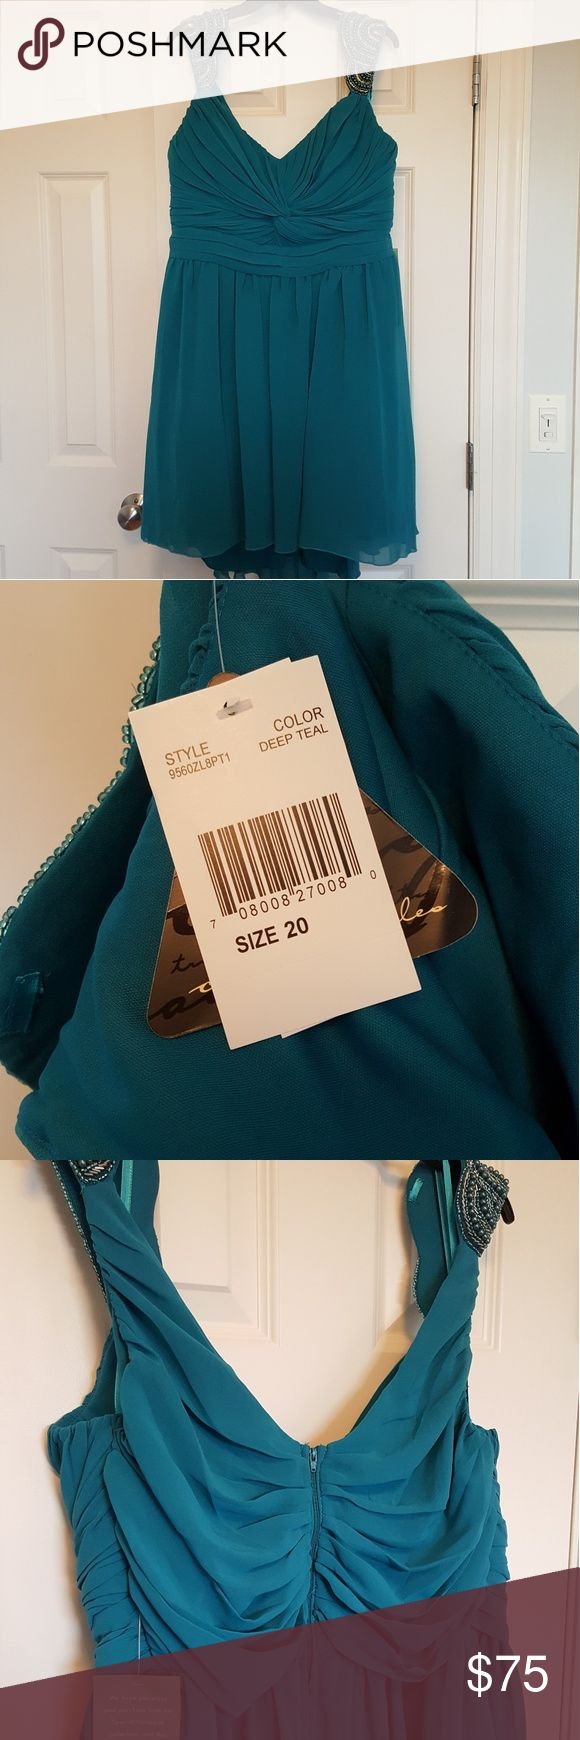 JC Penny Juniors Dress Brand new! Never worn. Deep teal color. jcpenney Dresses Prom